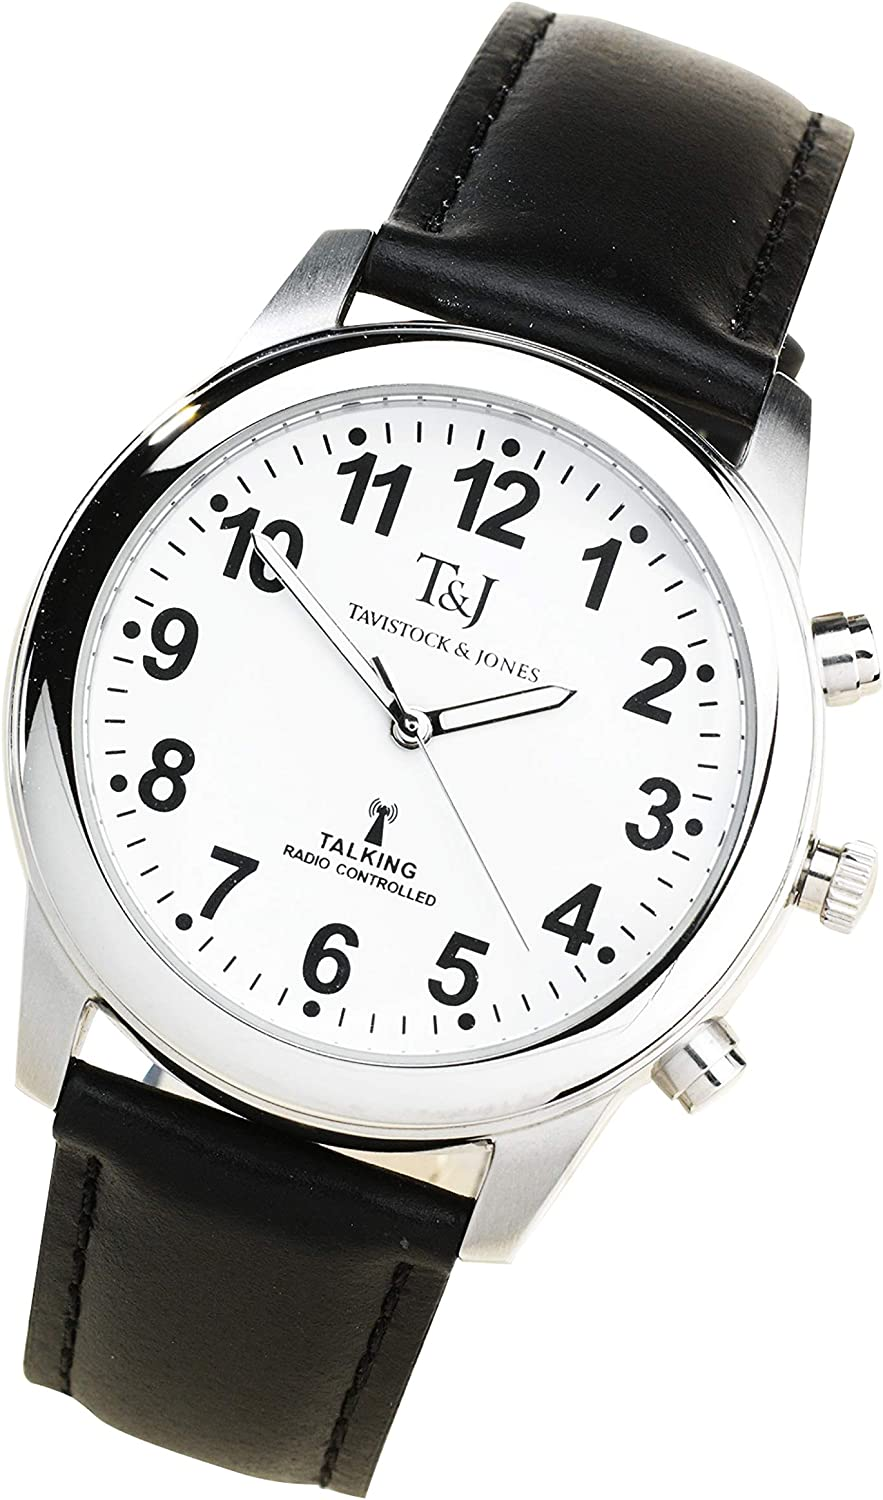 Radio Controlled Watches Uk Watch Collection